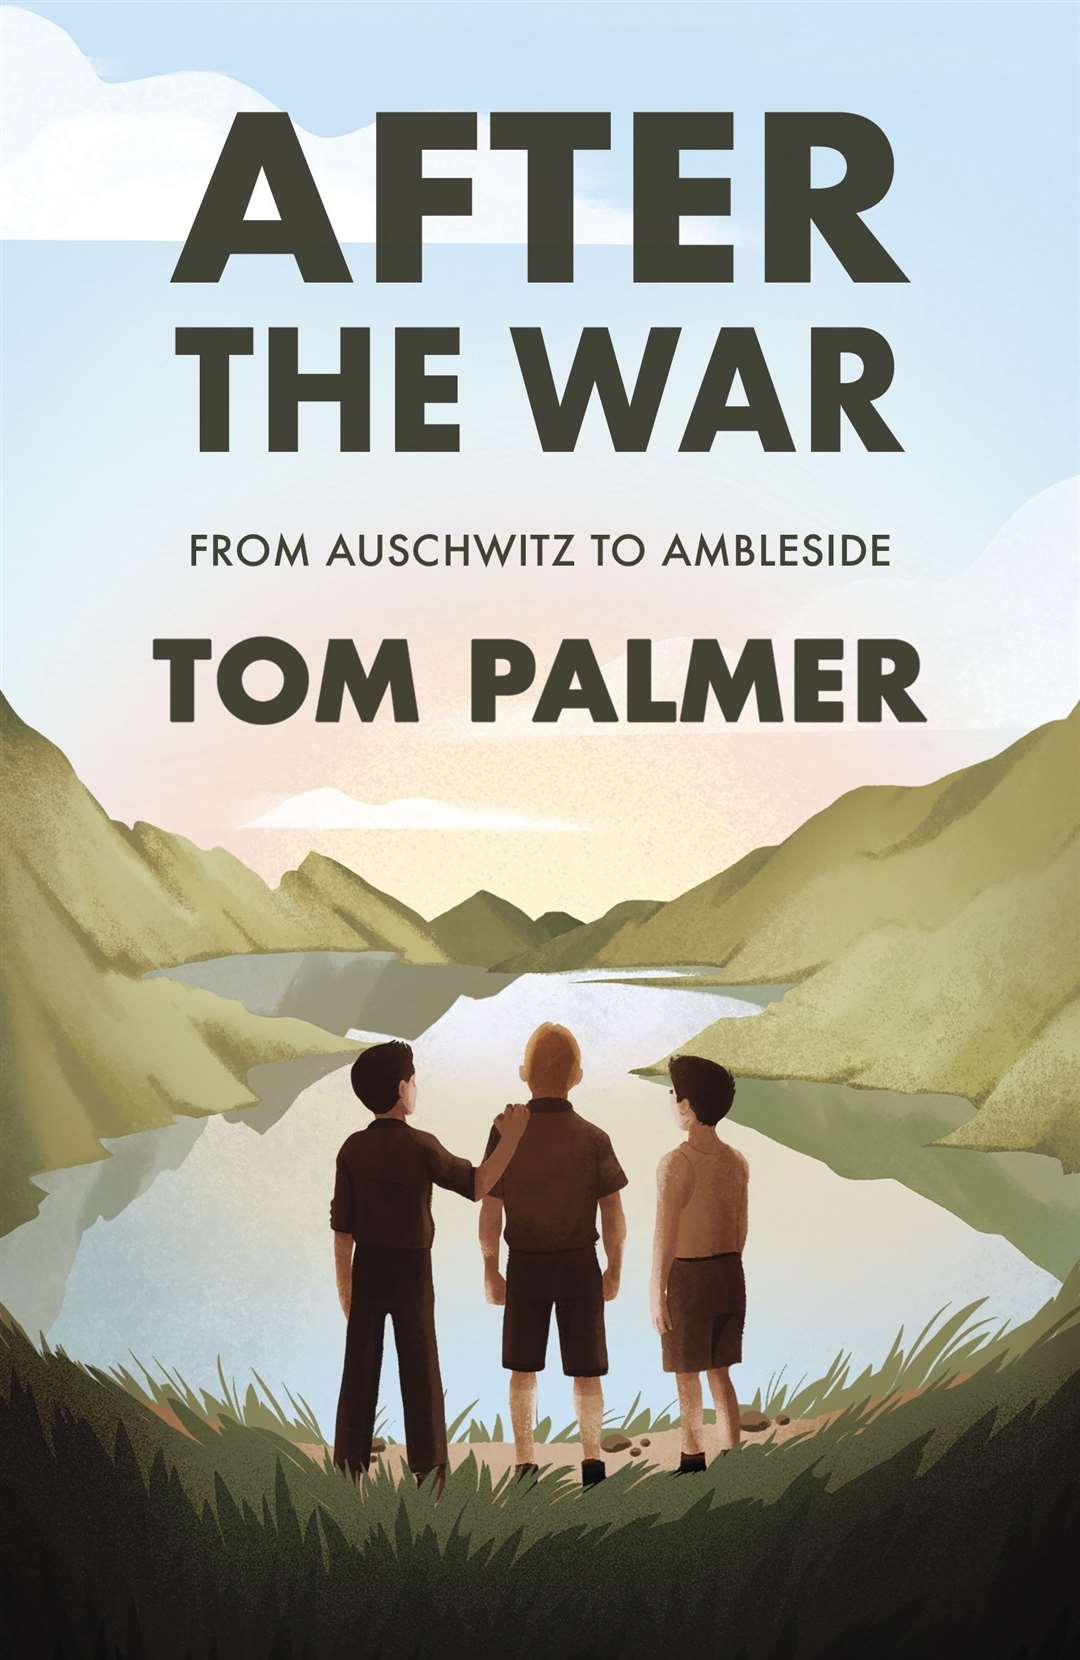 After The War: From Auschwitz to Ambleside by Tom Palmer (42617230)